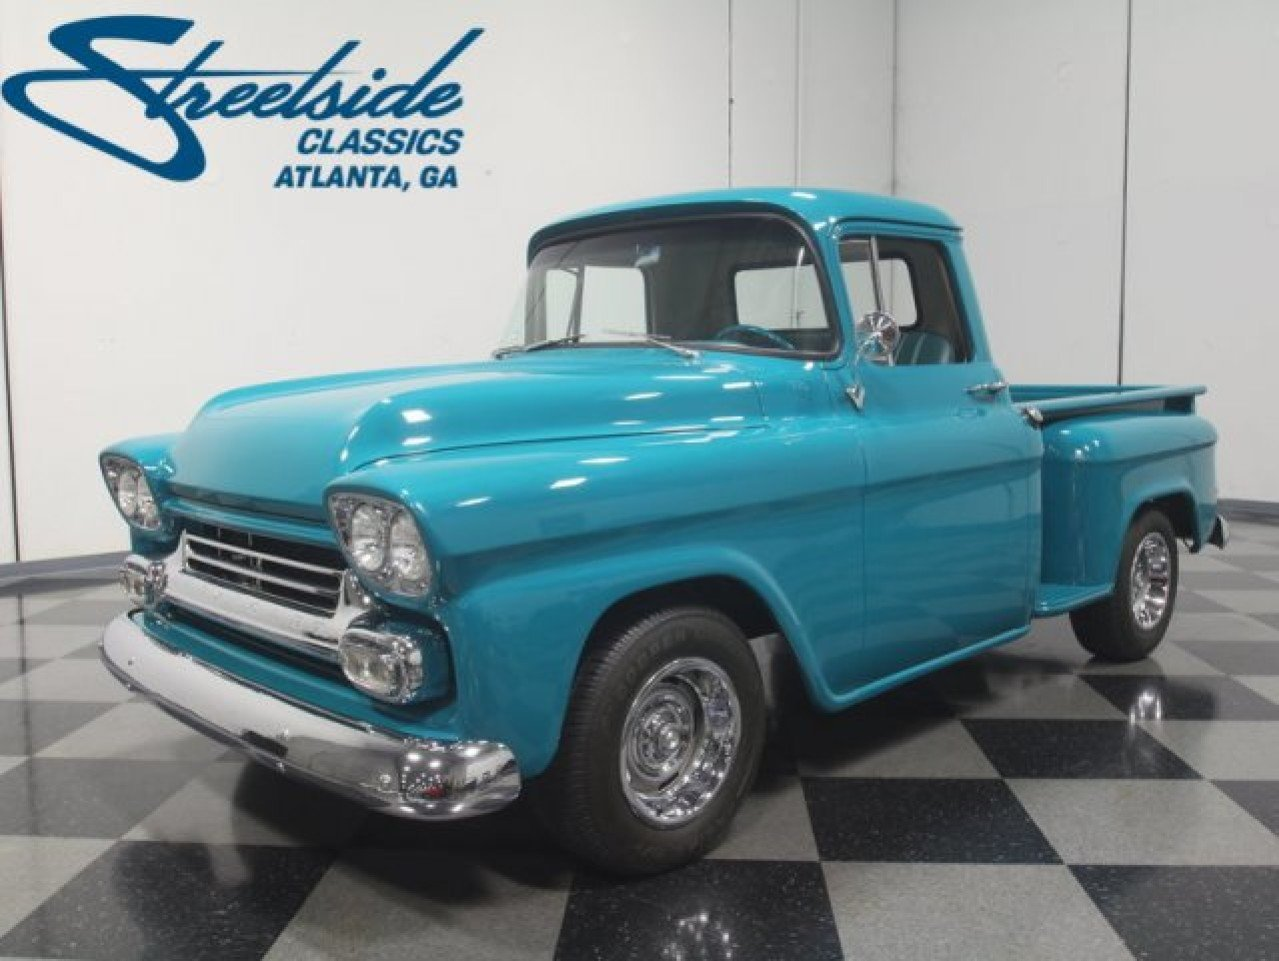 1955 Dodge Truck For Sale >> 1959 Chevrolet Apache for sale near Lithia Springs, Georgia 30122 - Classics on Autotrader